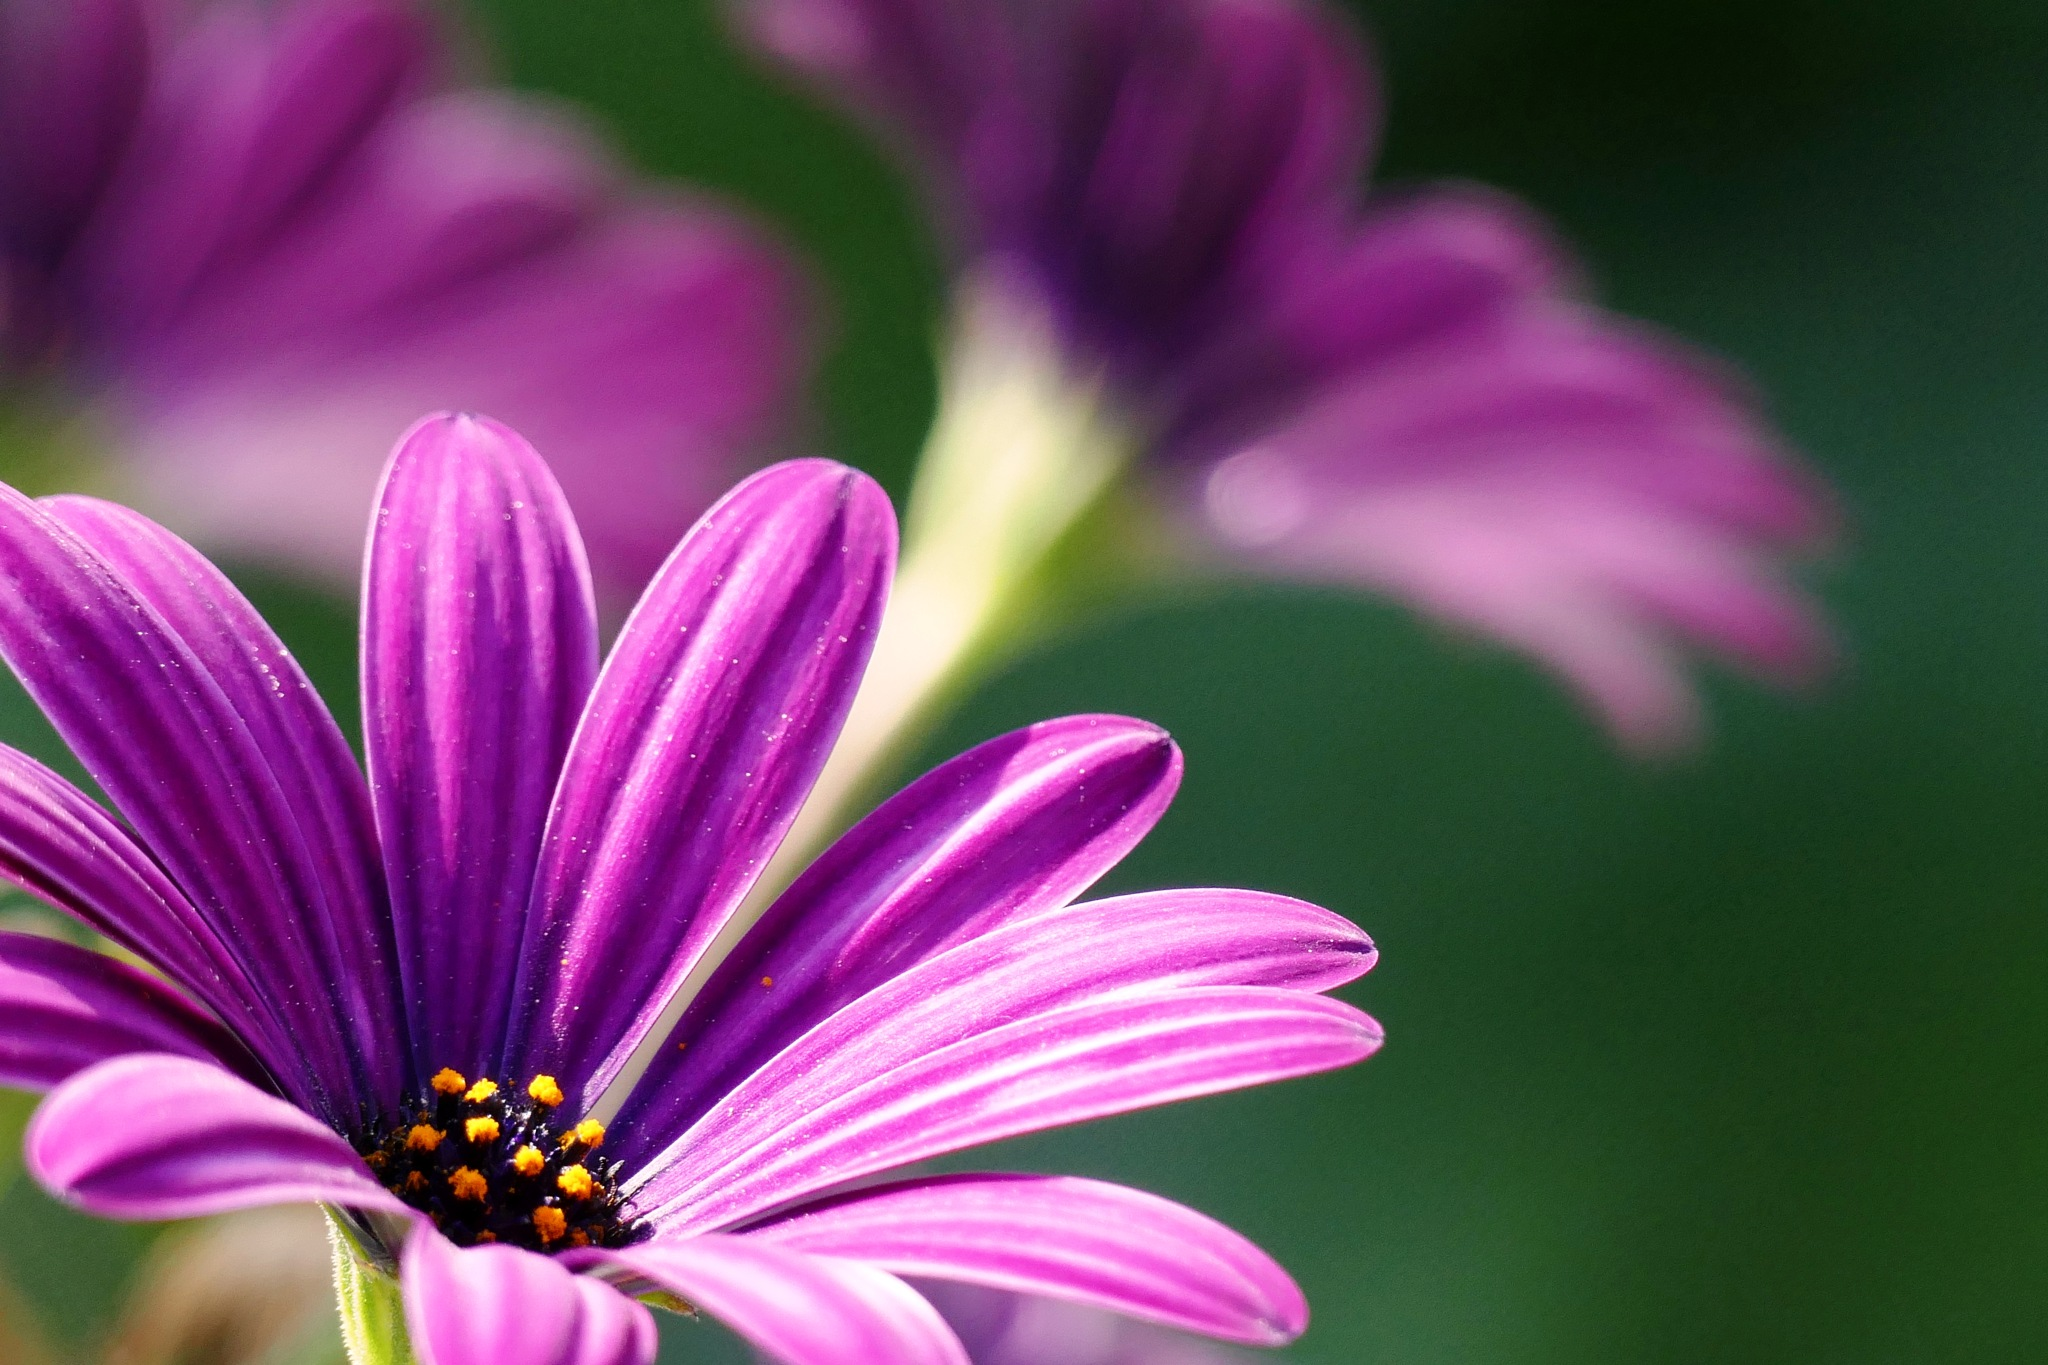 focus on flowers by JOSEPH MAZZUCCO